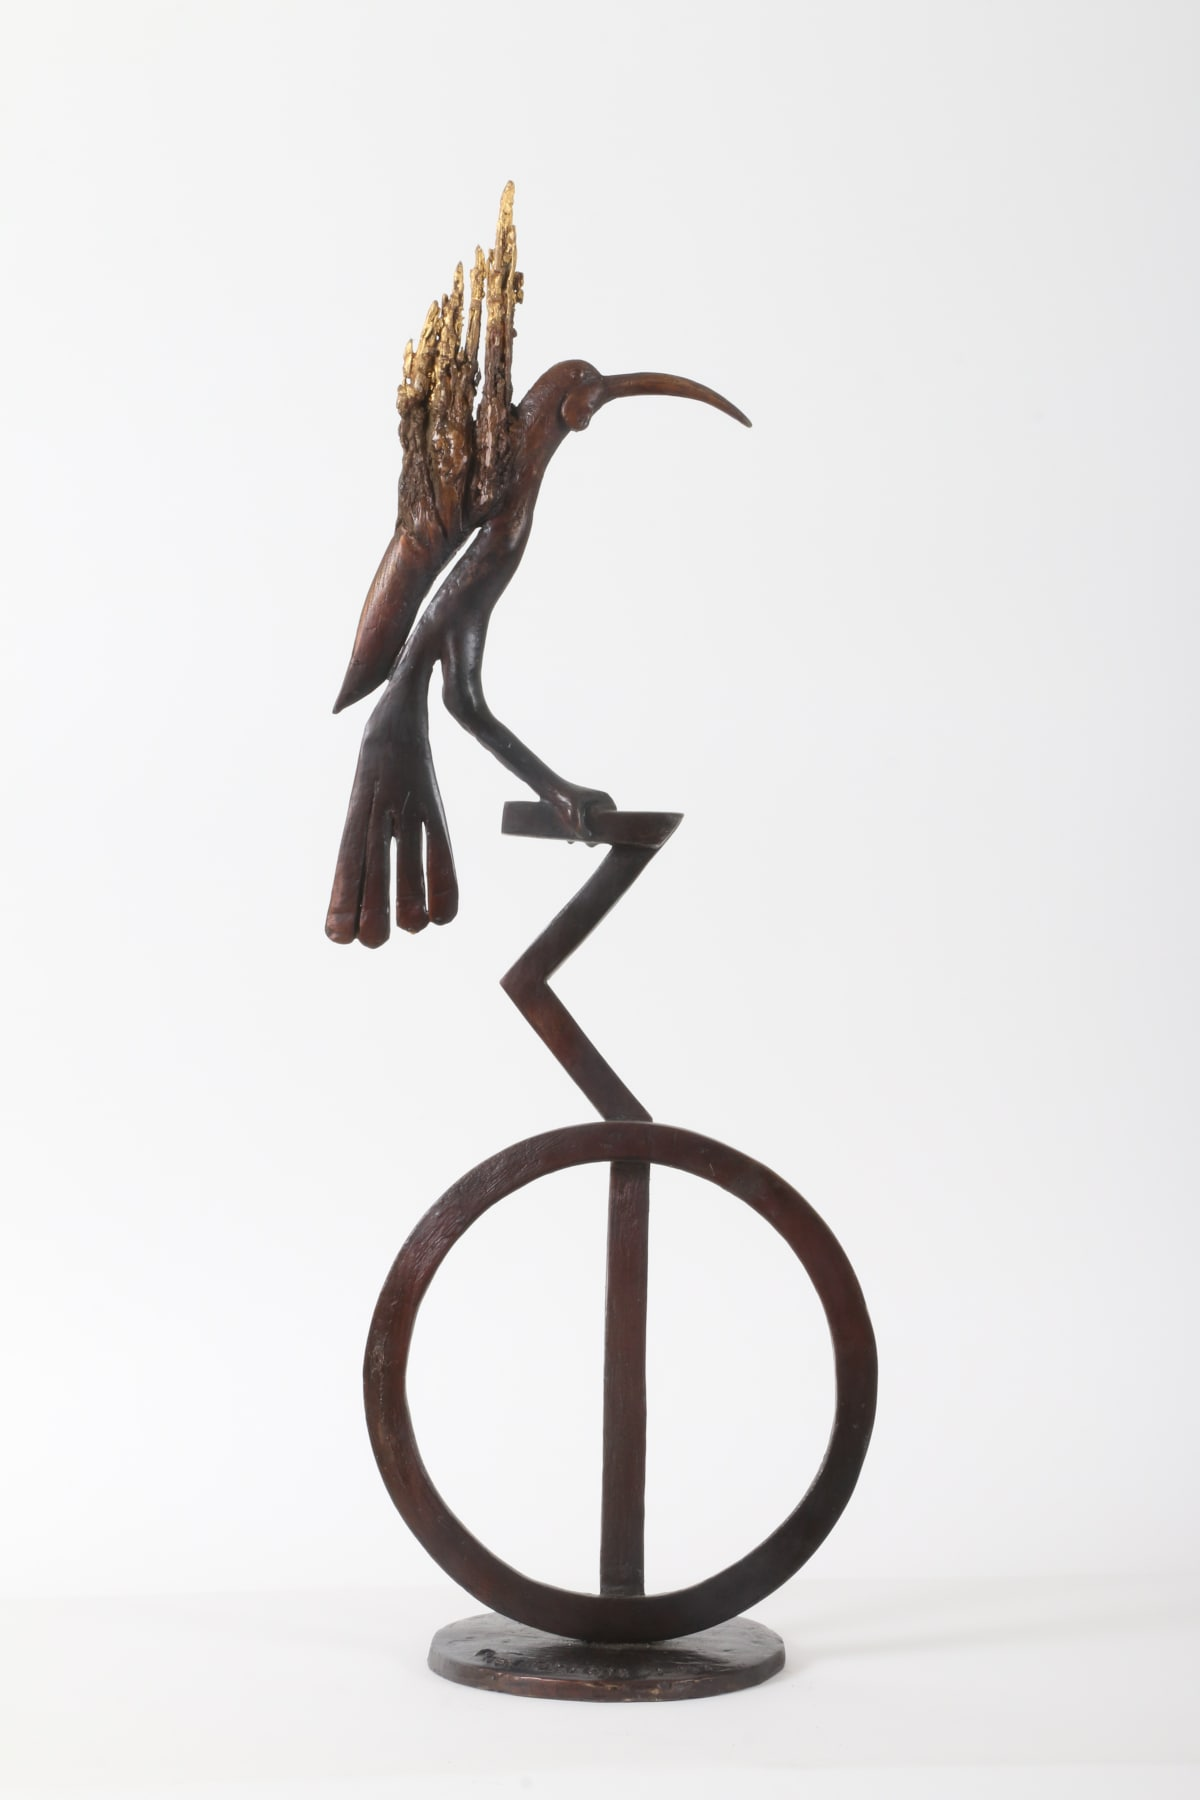 Paul DIBBLE The Last Huia, 2017 Cast bronze and 24kt gold 27.6 x 10.2 x 6.7 in 70 x 26 x 17 cm